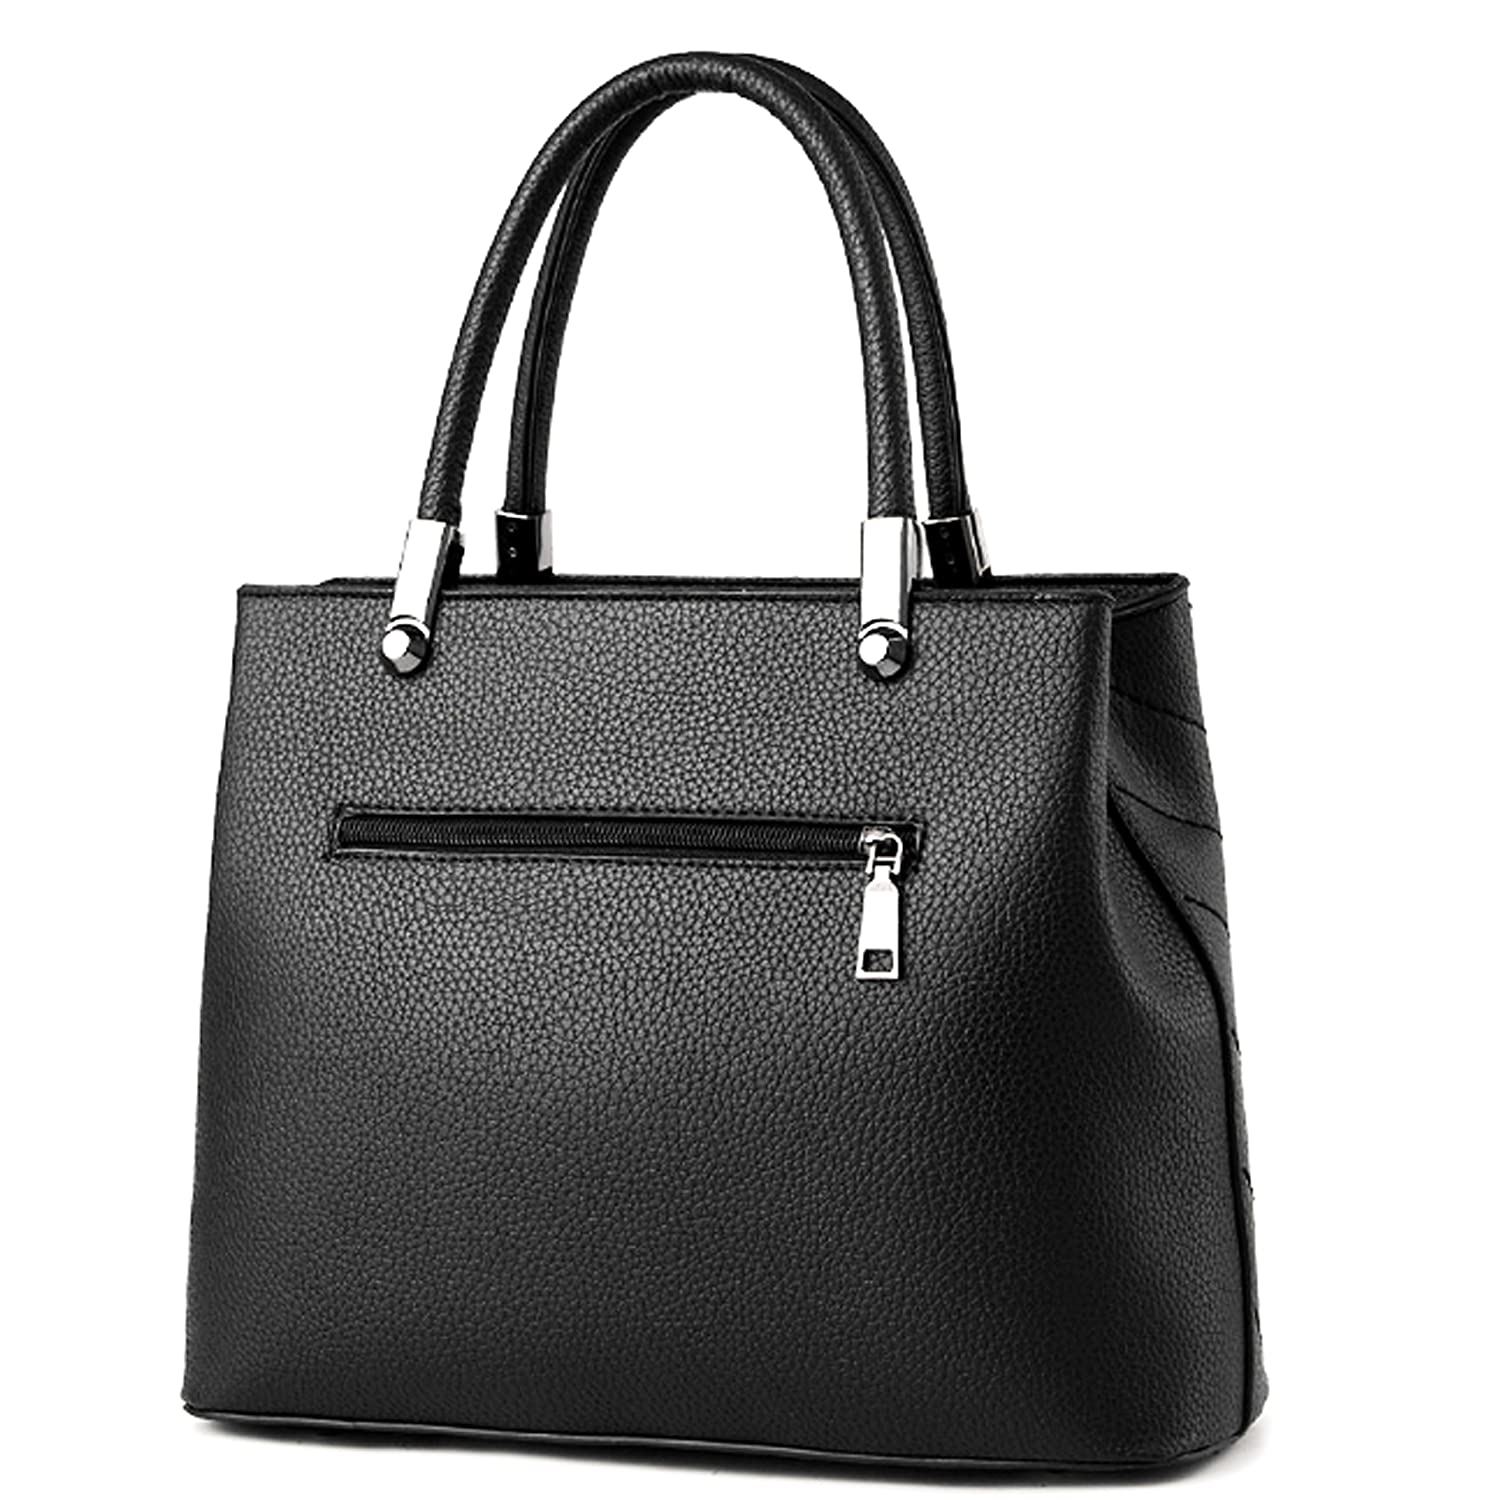 a056184e17 Minch Women PU Leather Designer Tote Handbags Shoulder Bags for Work on  Clearance (Black)  Amazon.in  Computers   Accessories